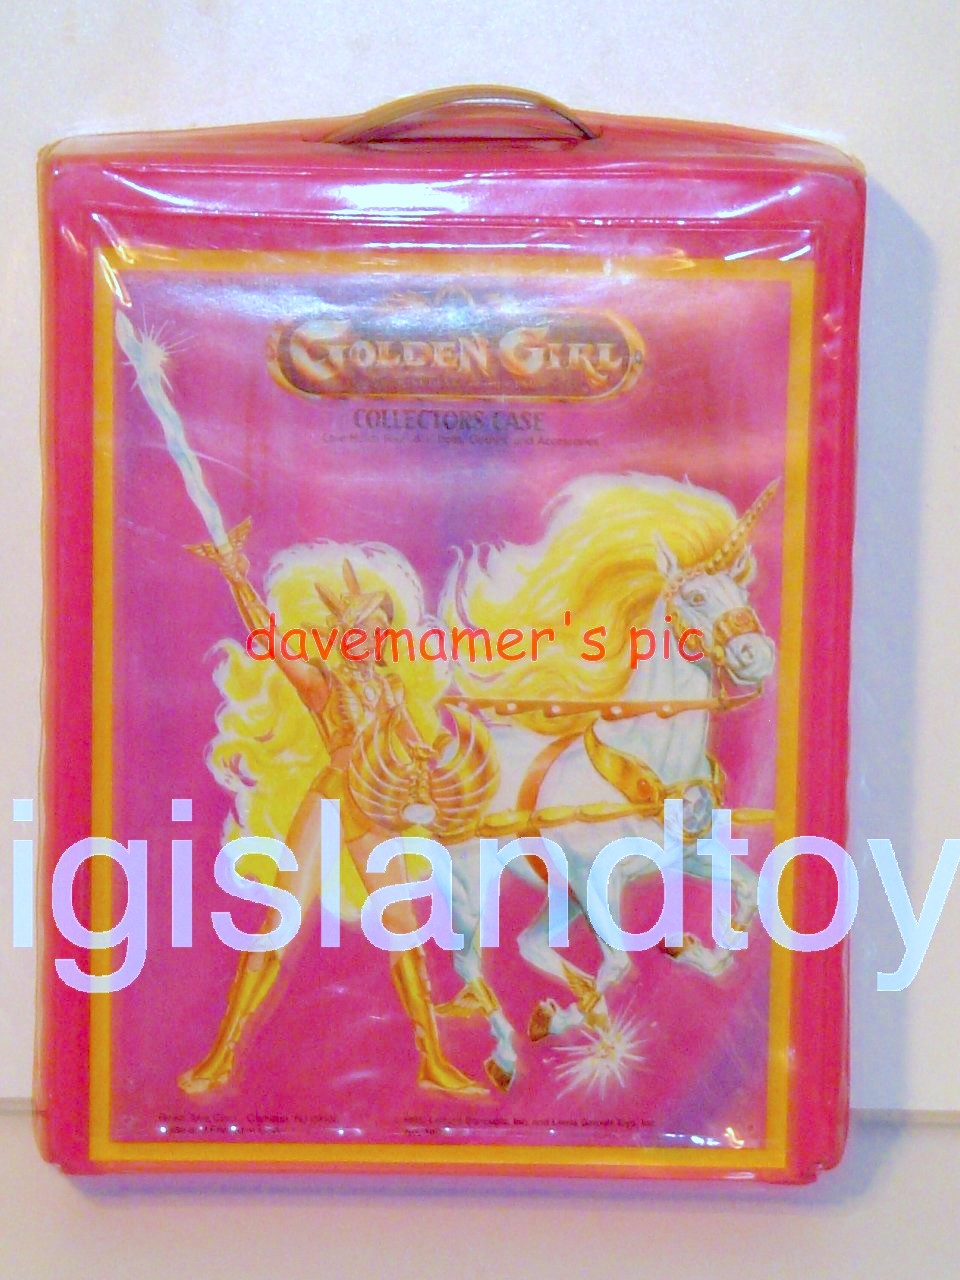 Golden Girl    Figure Collectors Case